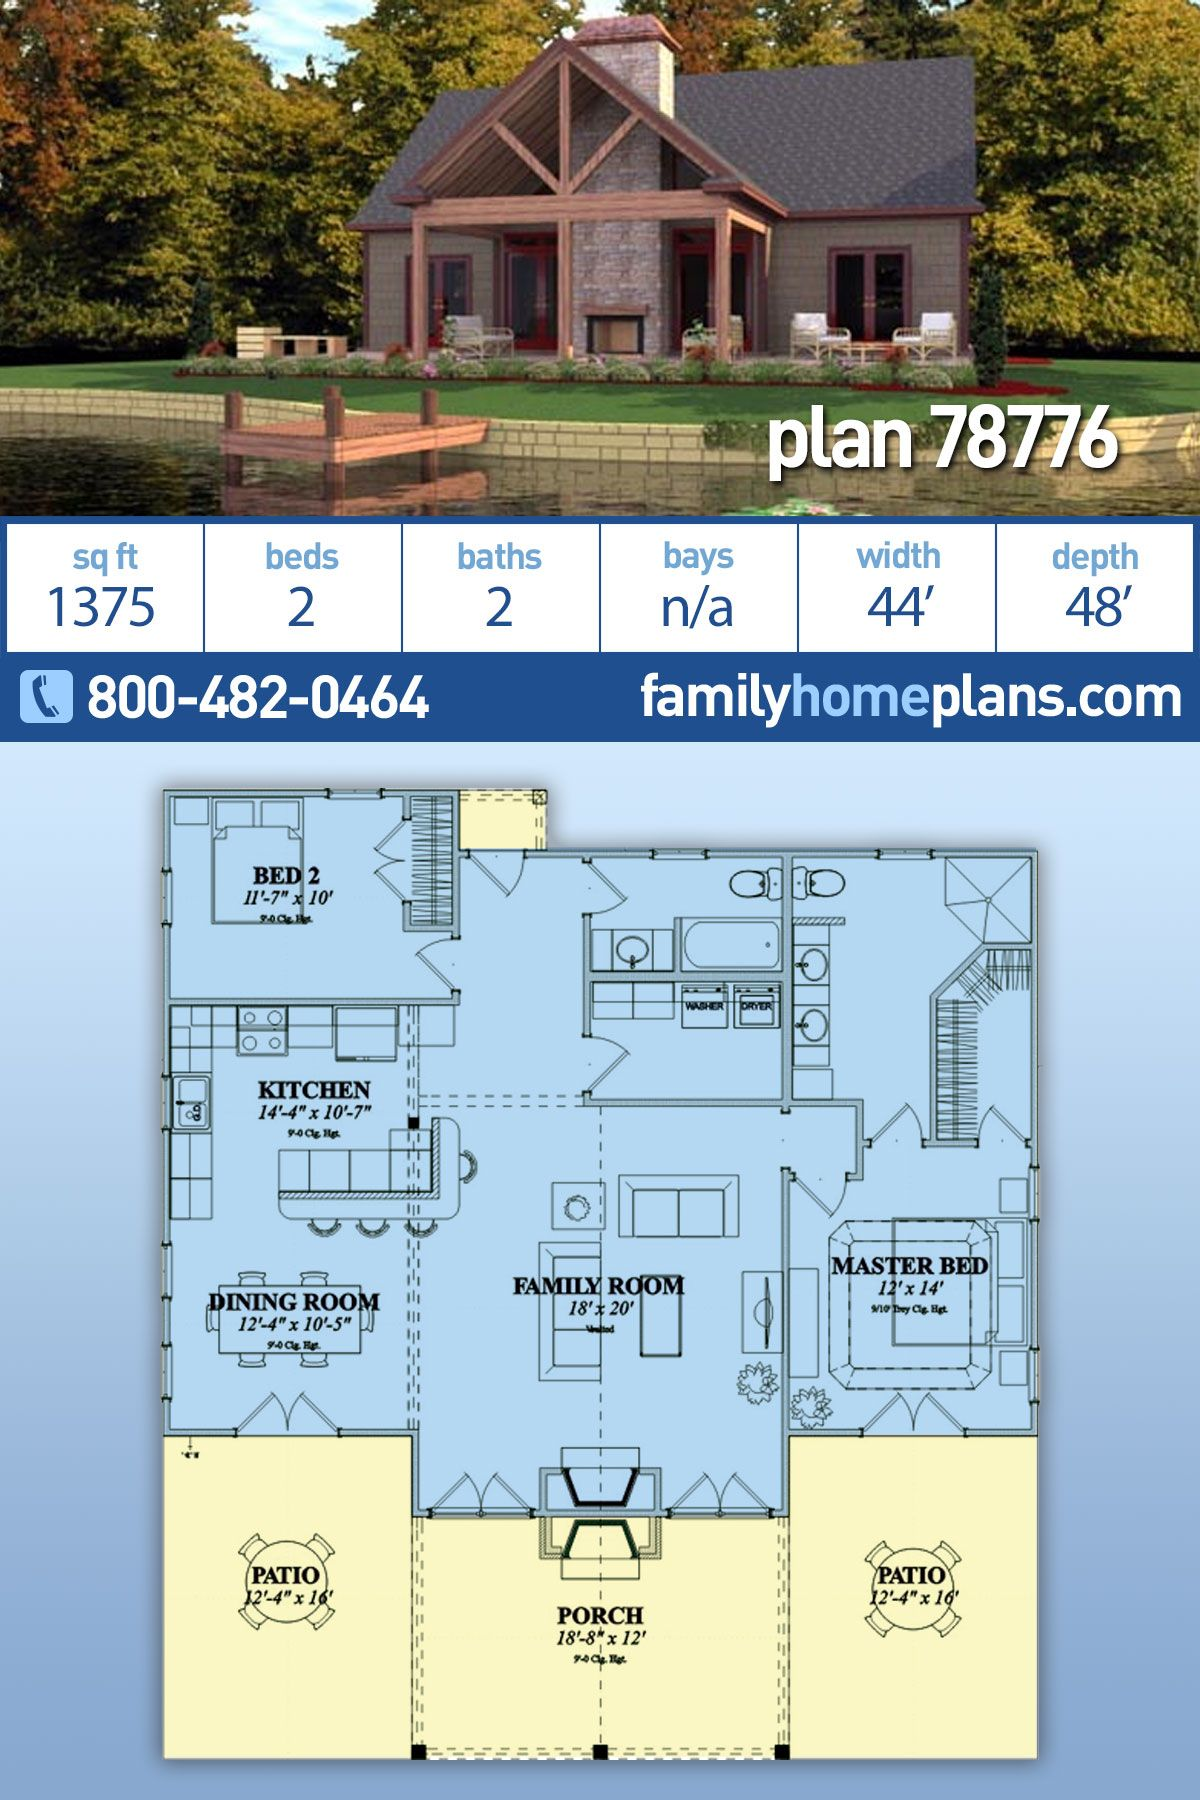 Bungalow Style House Plan 78776 With 2 Bed 2 Bath In 2020 Vacation House Plans Bungalow Style House Plans Family House Plans